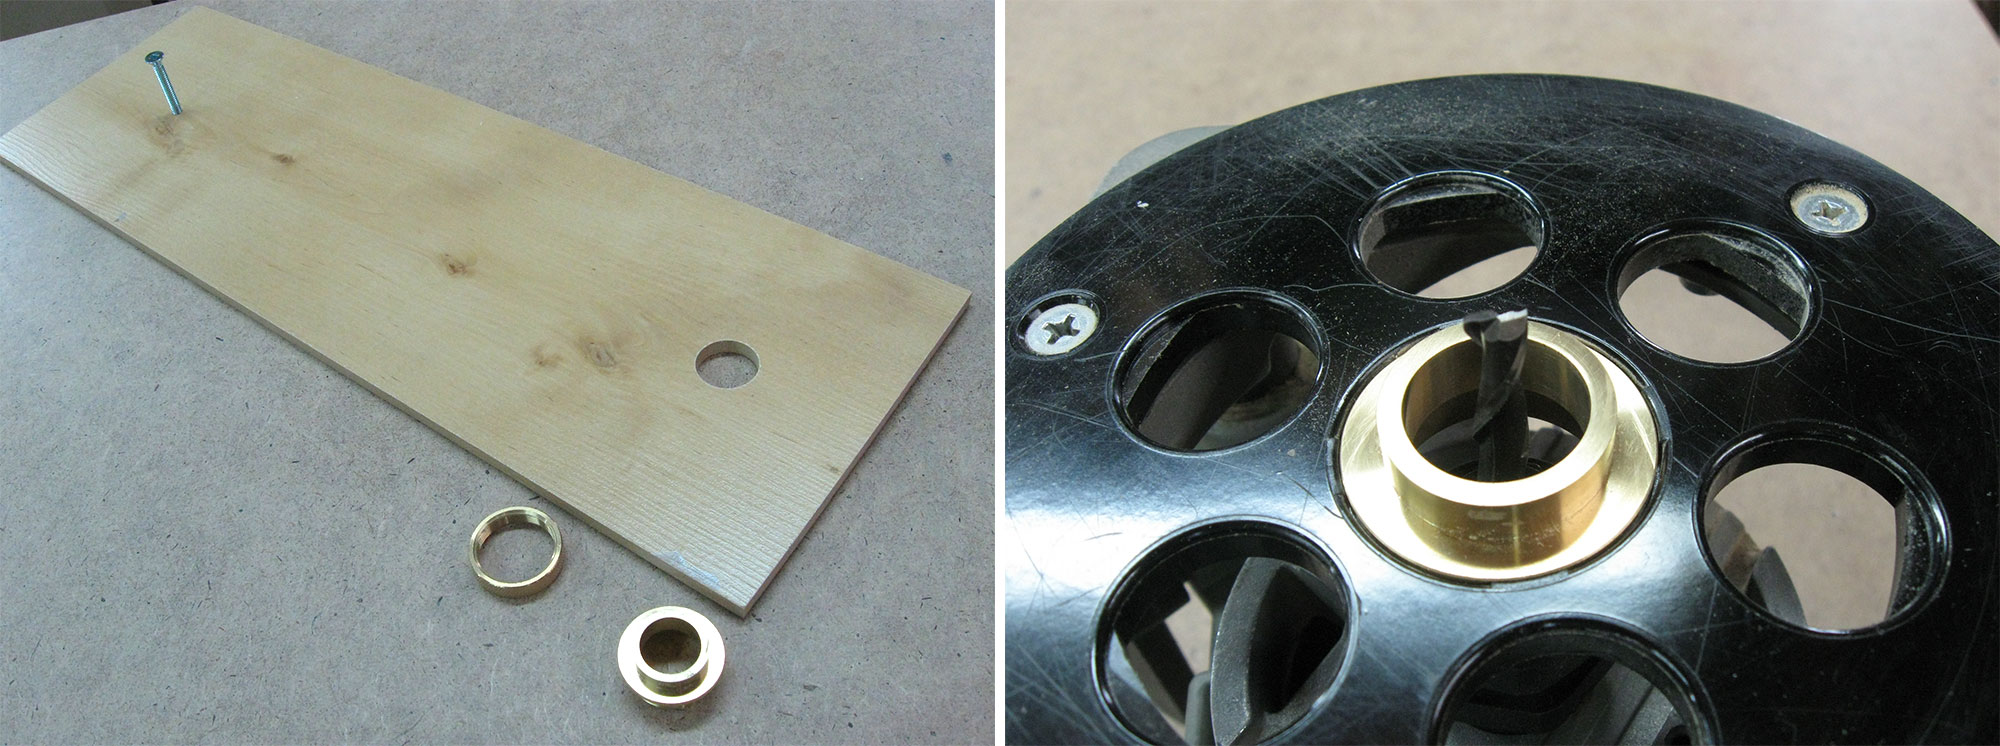 "Left: Holes drilled into trammel. Right: 1"" guide bushing installed in router baseplate."